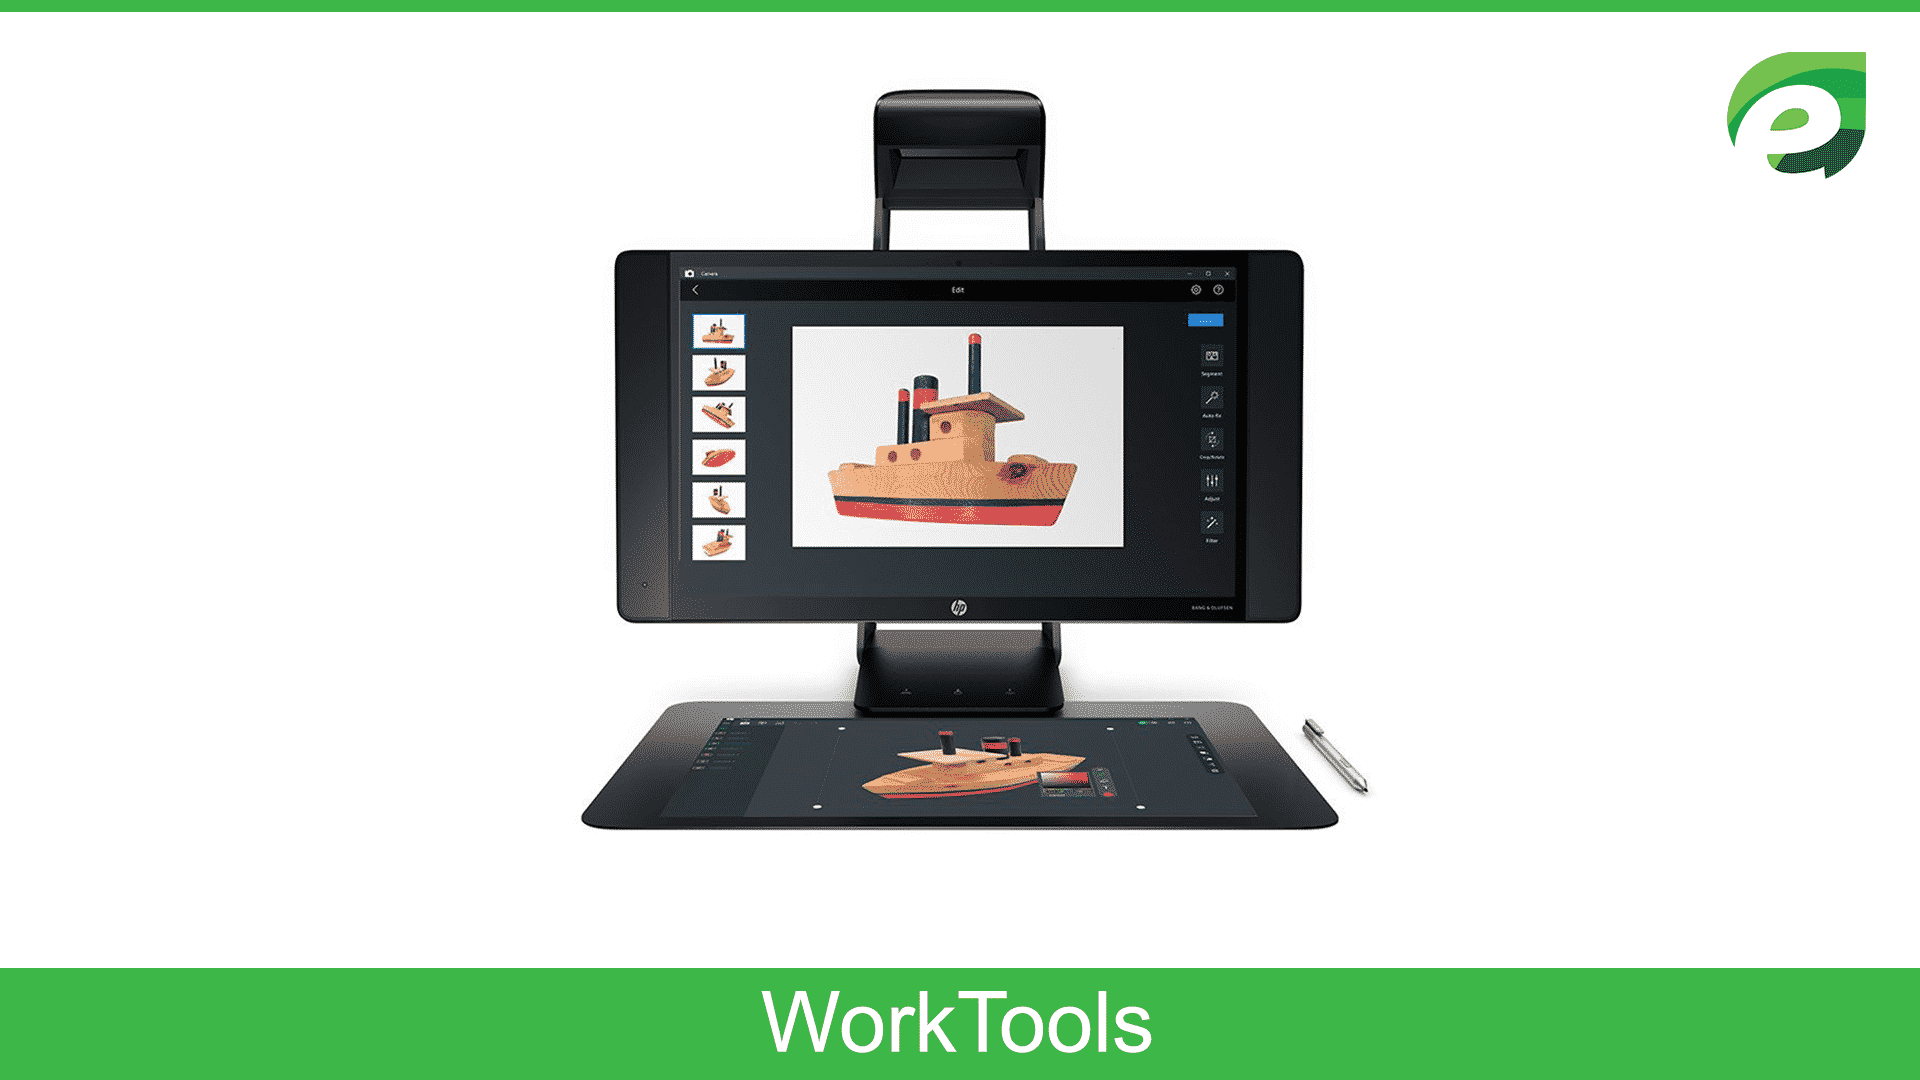 hp sprout G2 - worktool